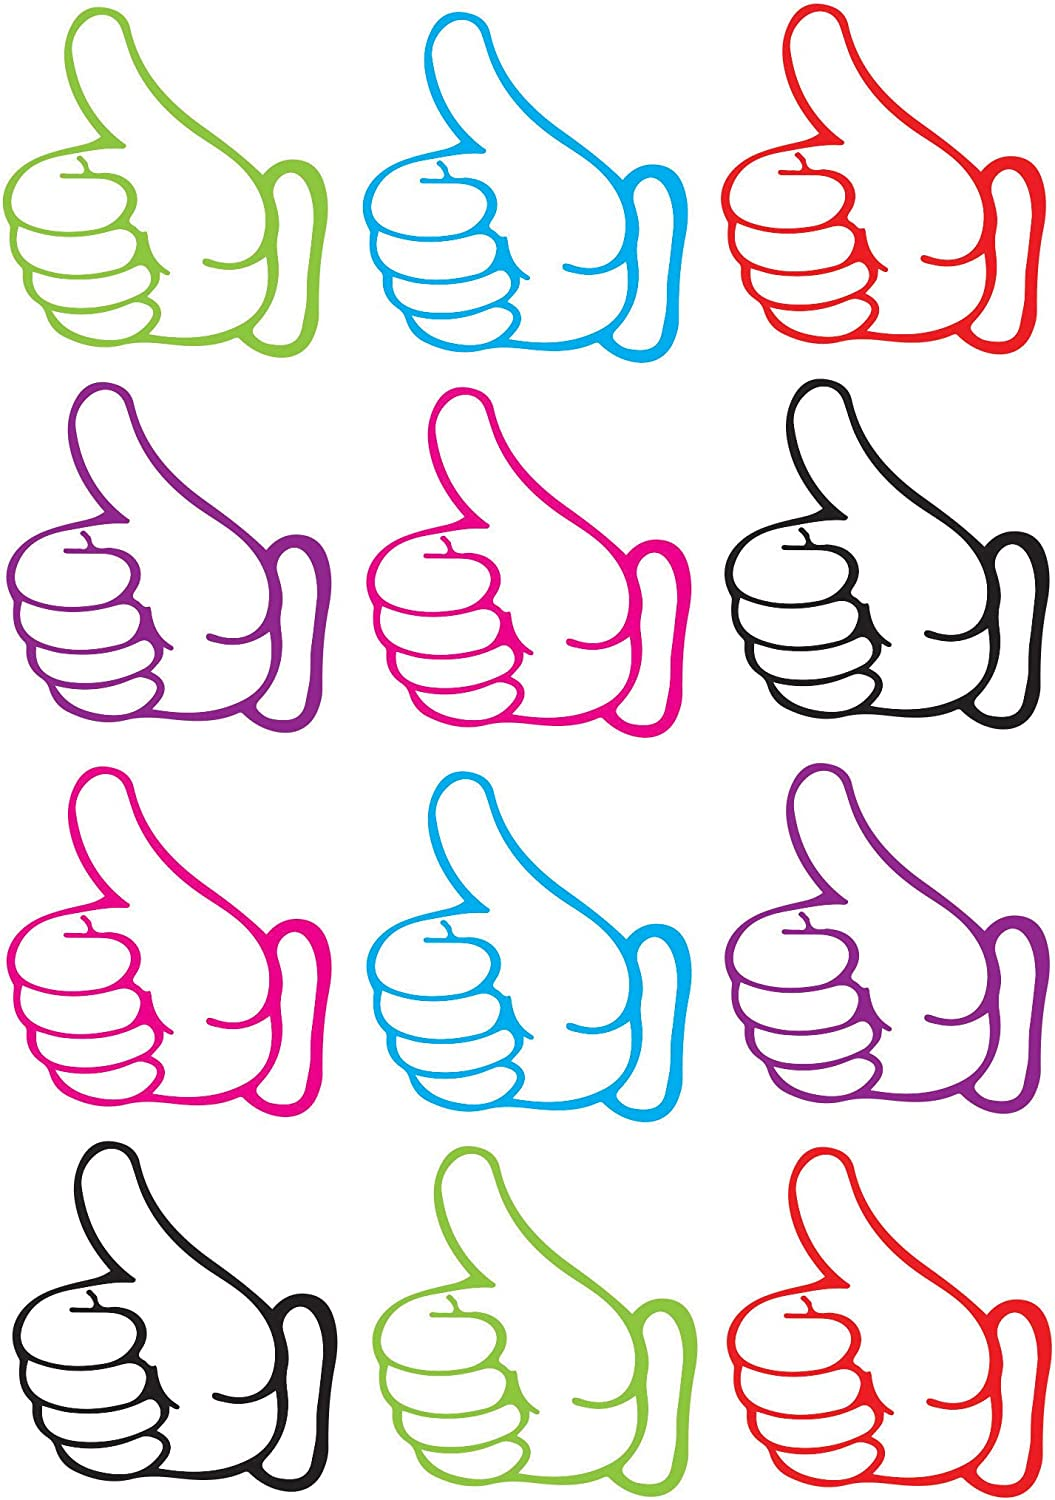 ASHLEY PRODUCTIONS Thumbs Up Die-Cut Piece 12 8.25